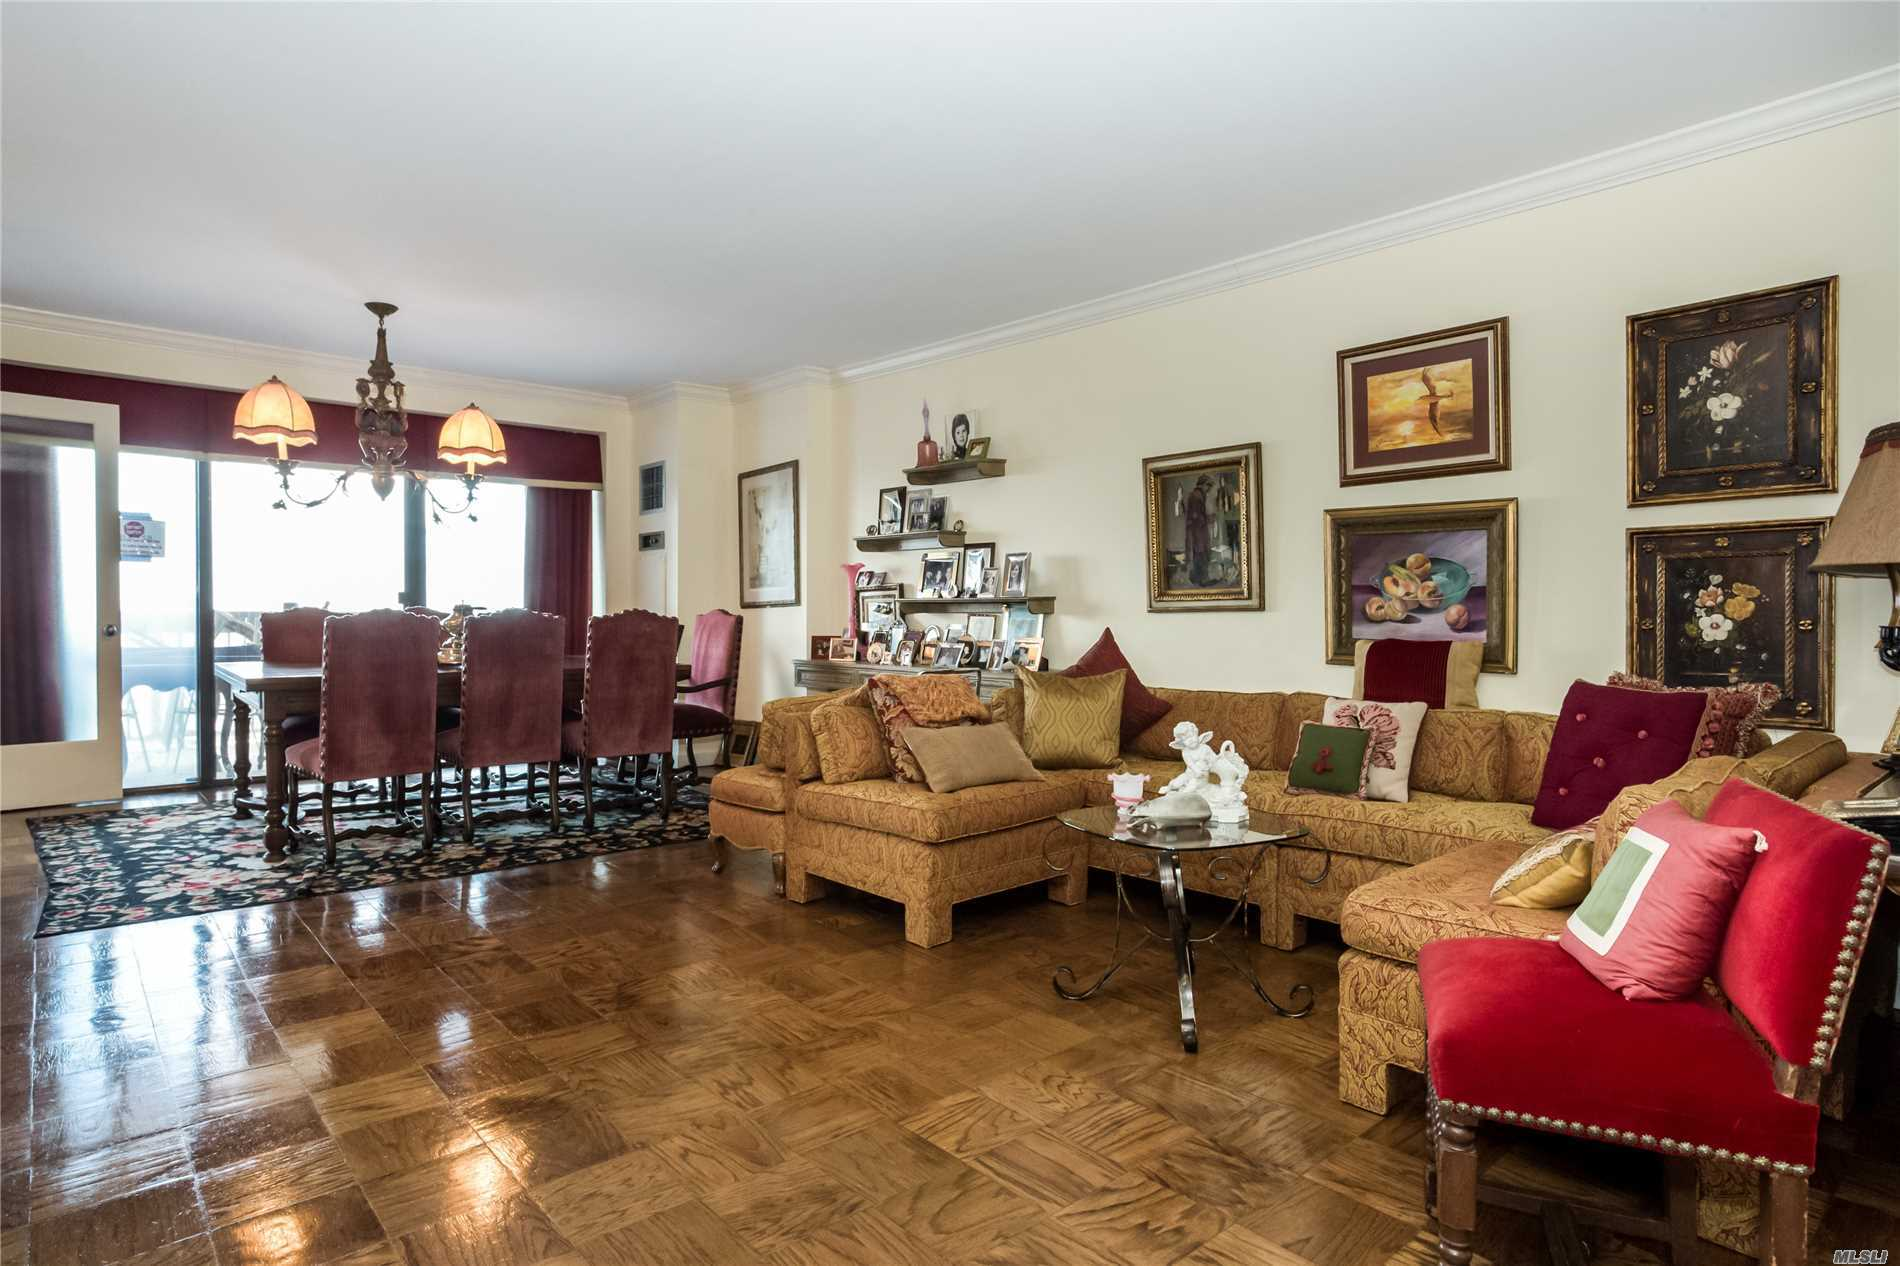 Spacious & Gracious Jr. 4 With Grand Lr/Dr + 2nd Bedroom Or Den, 2 Full Baths, Large Kitchen, Terrace, Washer/Dryer, Parking. Golf Club, Tennis, Indoor & Outdoor Pools, Hair Salon, Movies, Shops, Bank, Restaurants. Enjoy Country Club Living At Its Best!!!